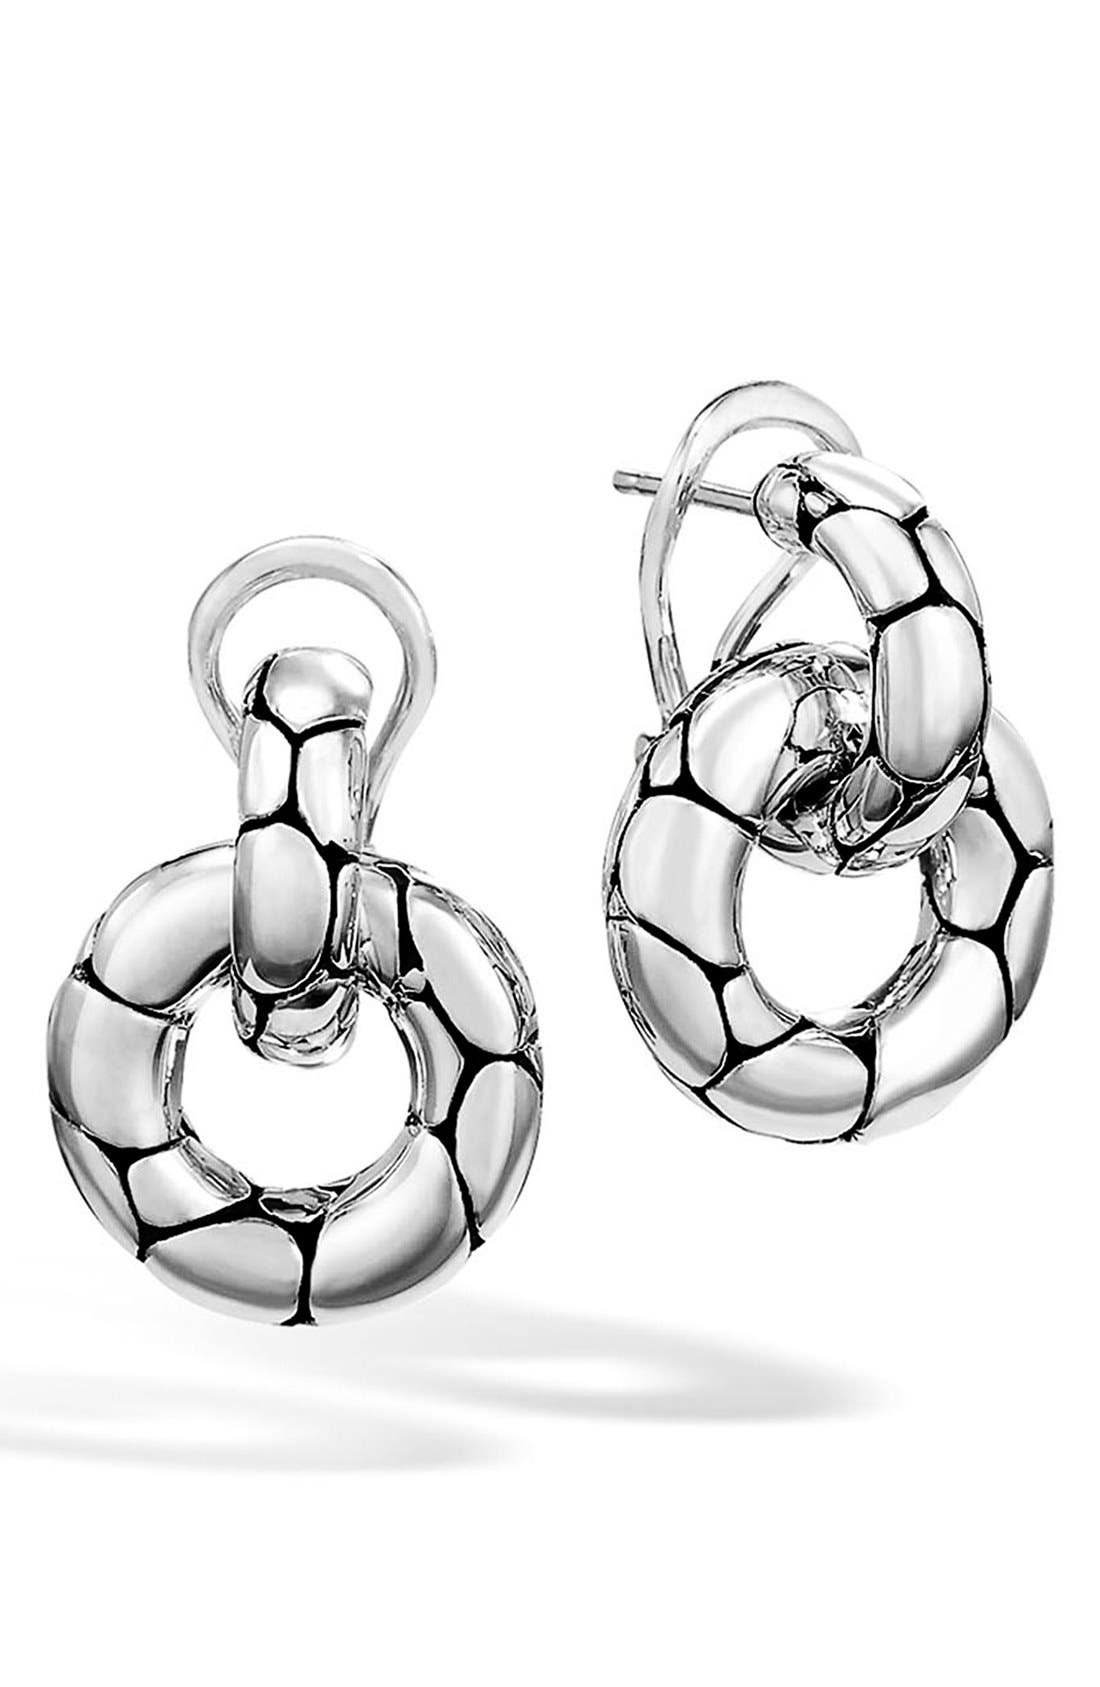 Main Image - John Hardy 'Kali' Small Door Knocker Earrings